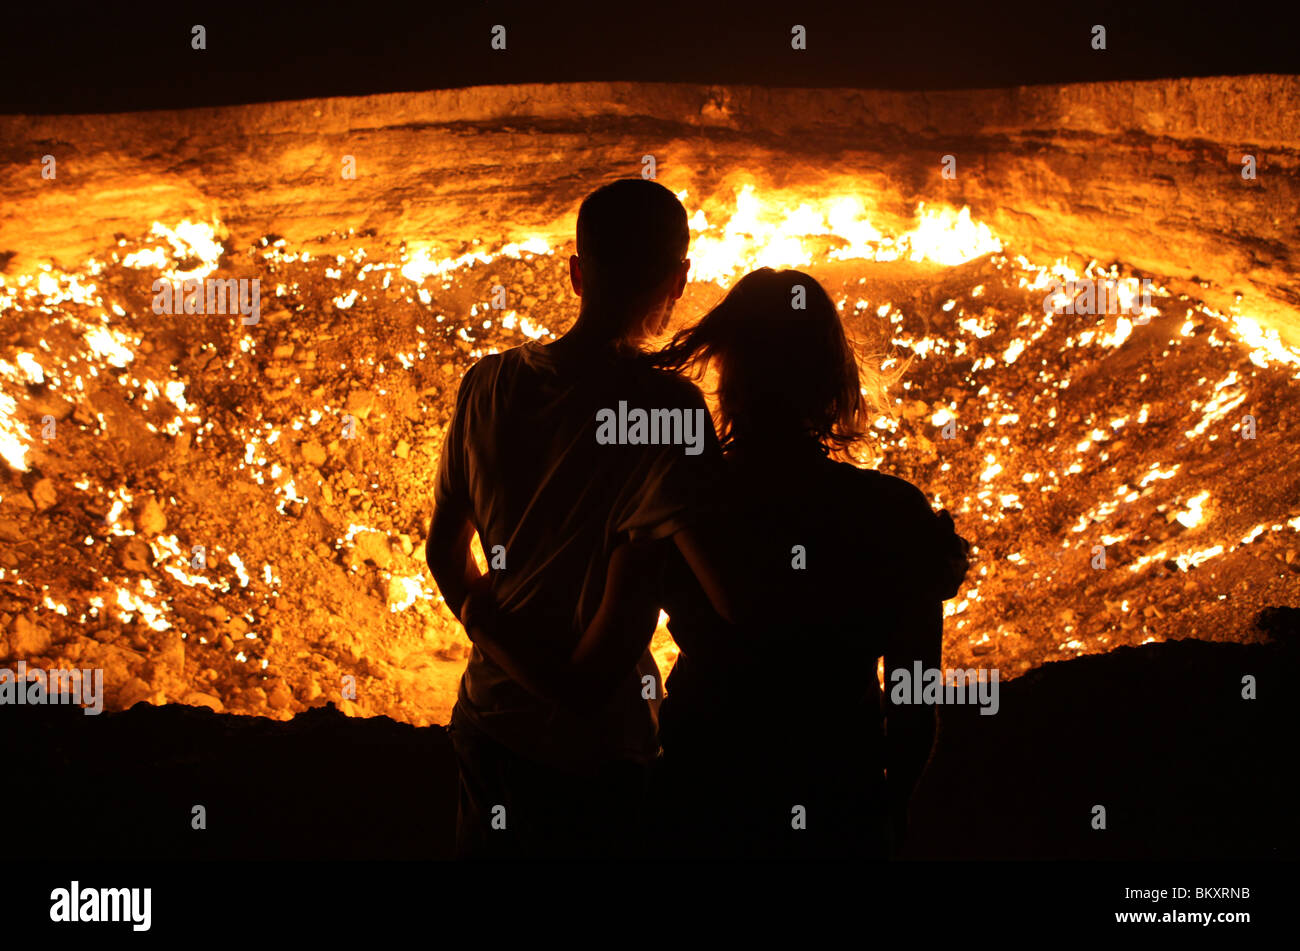 Derweze or Darvaza, aka as the Door to Hell is a huge crater of burning natural gas in the Kara-kum desert in Turkmenistan. Stock Photo